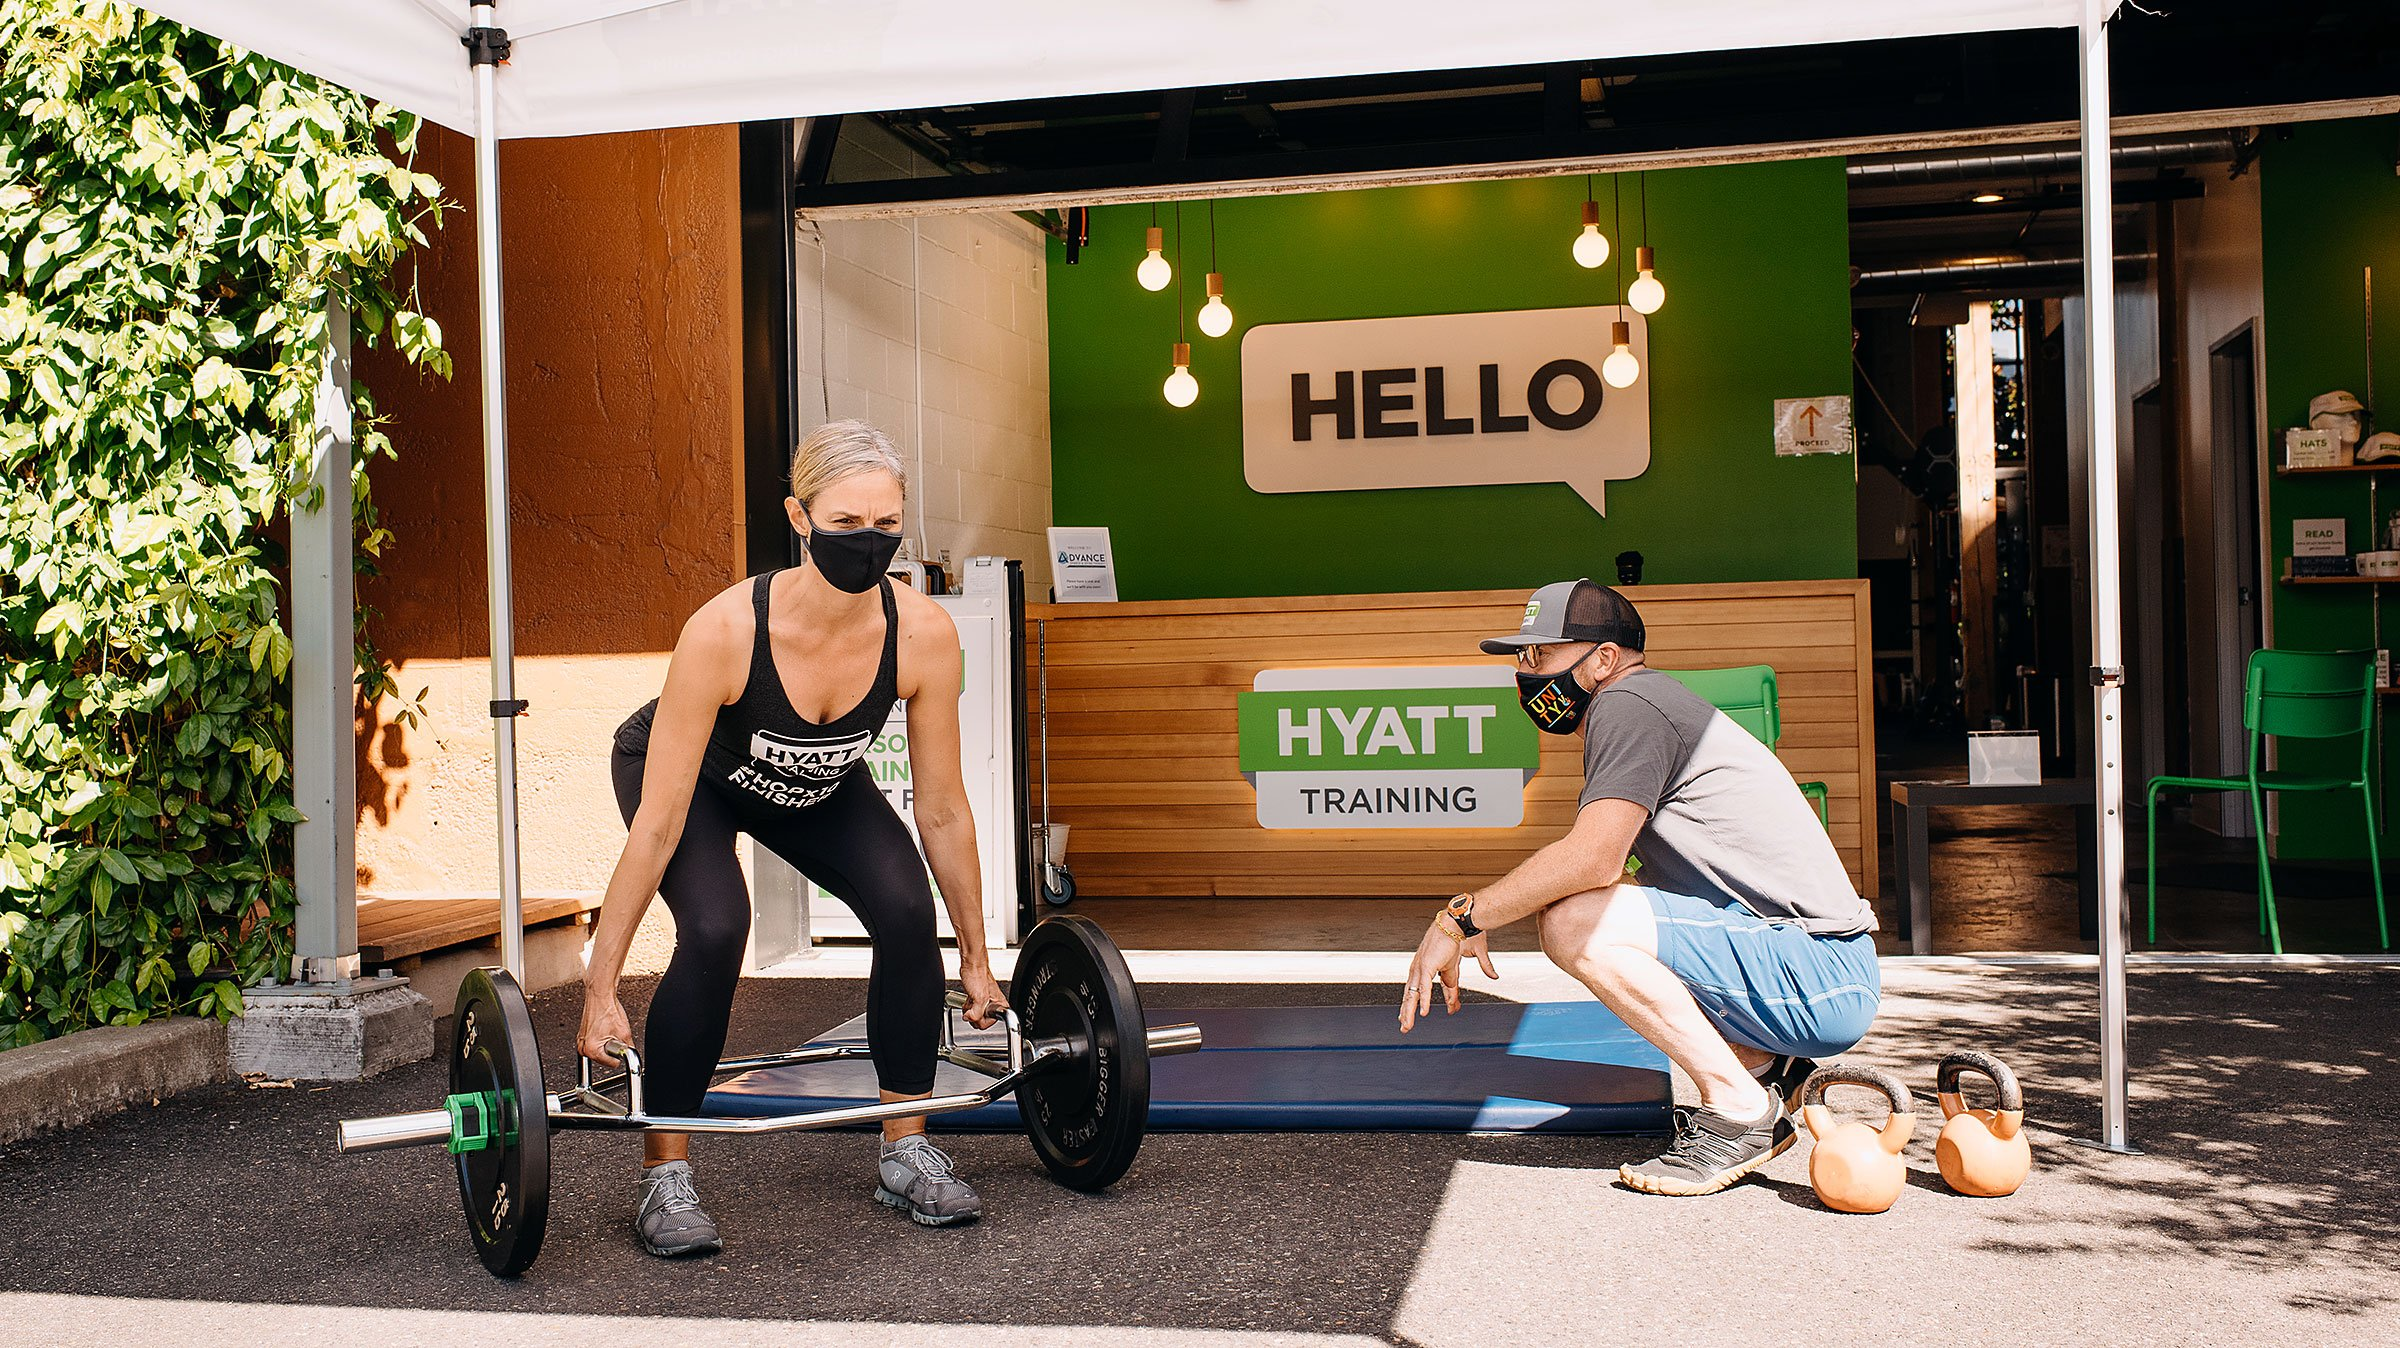 Hyatt Training Portland personal training gym in Portland, open during COVID-19